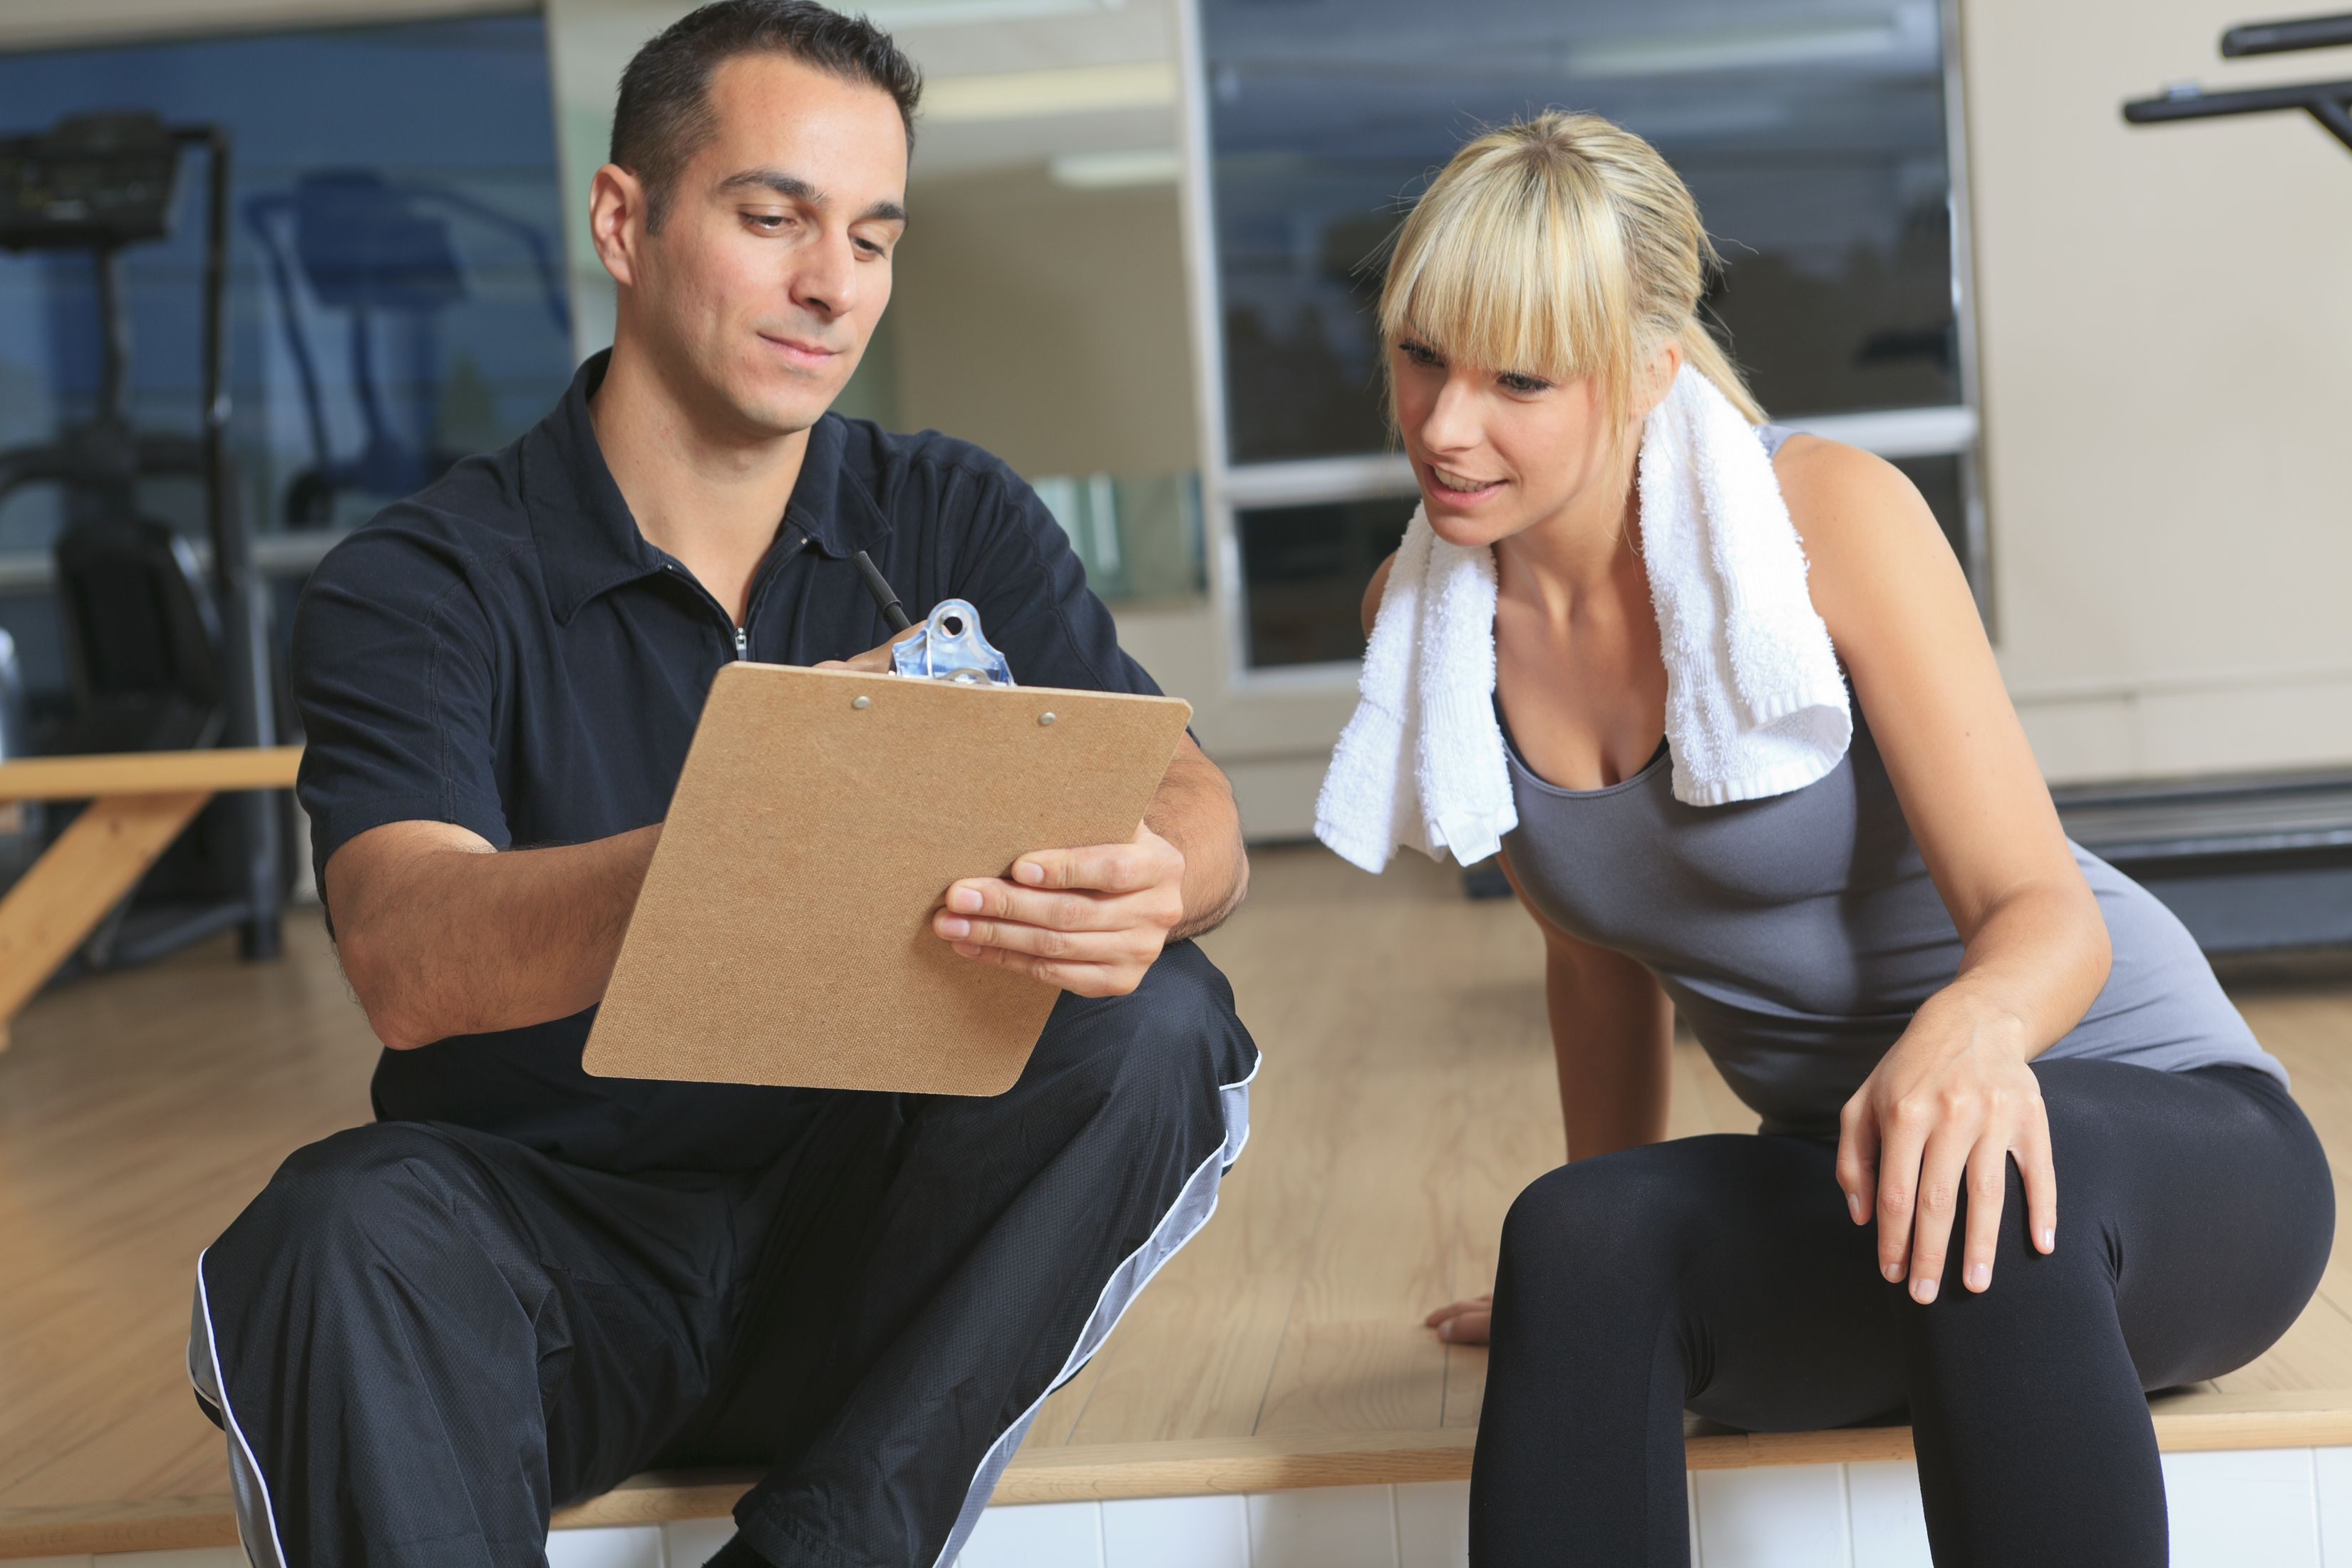 How to make a career in health fitness management